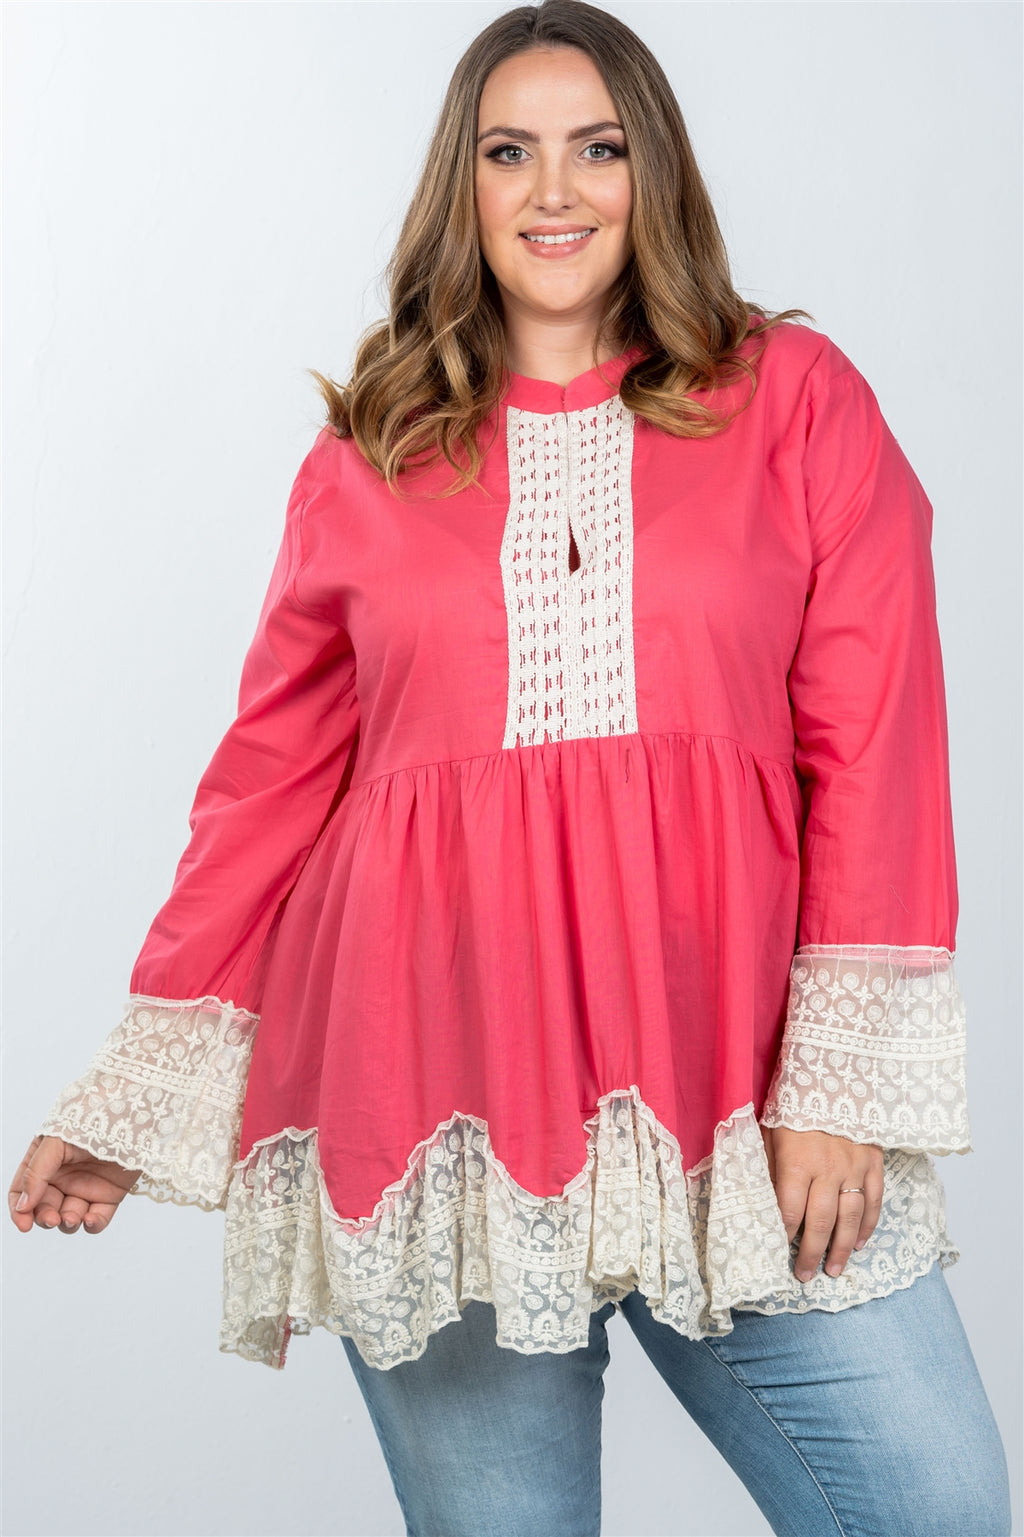 Ladies fashion plus size boho contrast lace trim babydoll tunic top